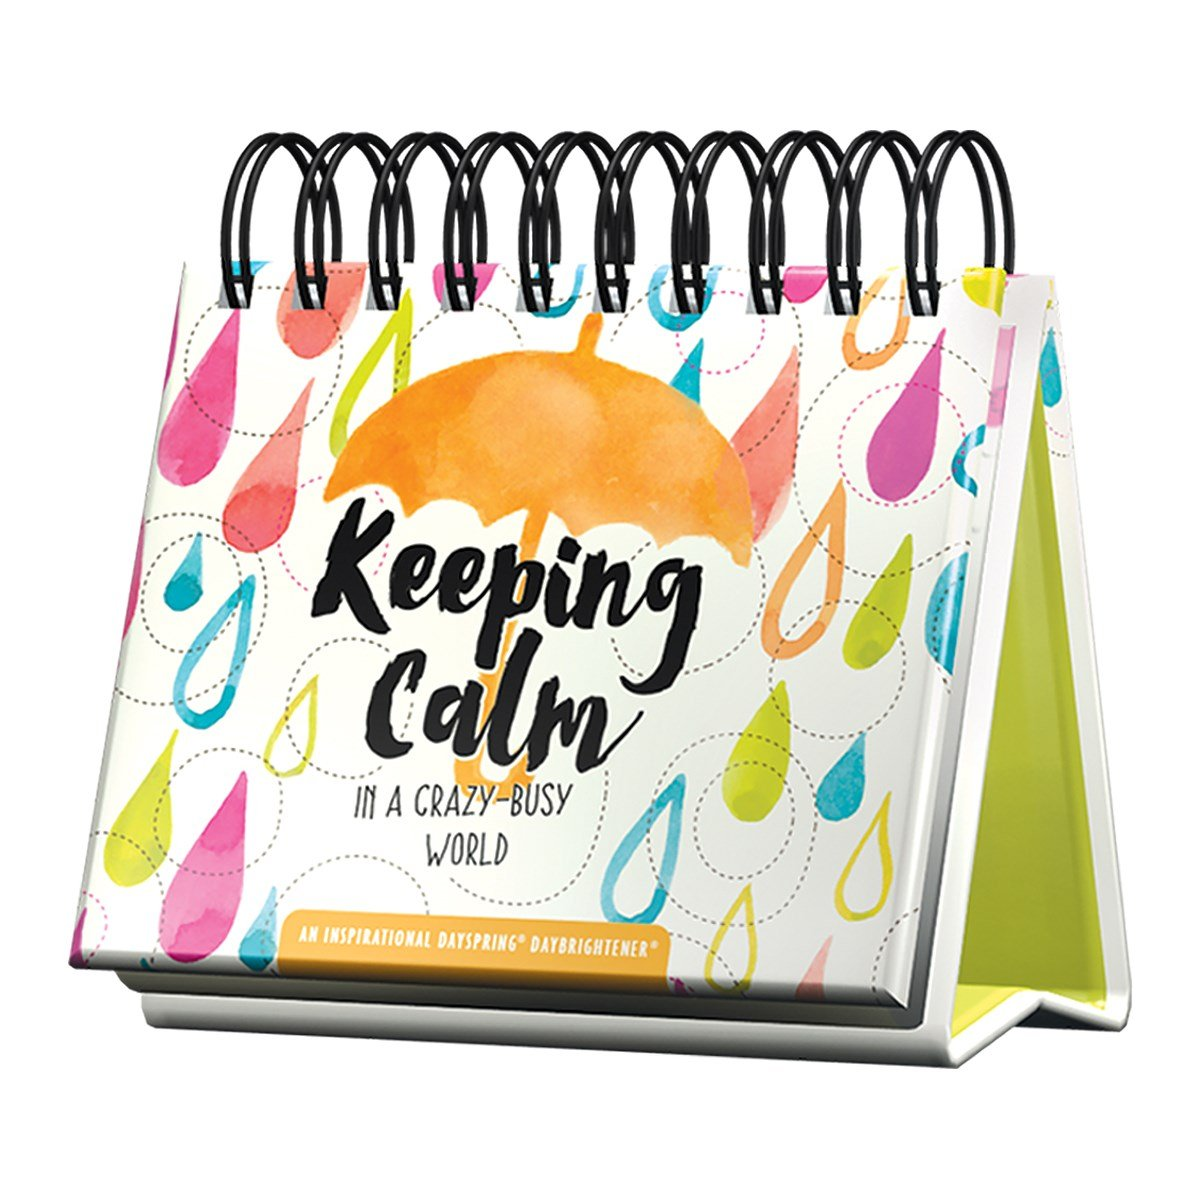 Flip Calendar - Keeping Calm in a Crazy-Busy World